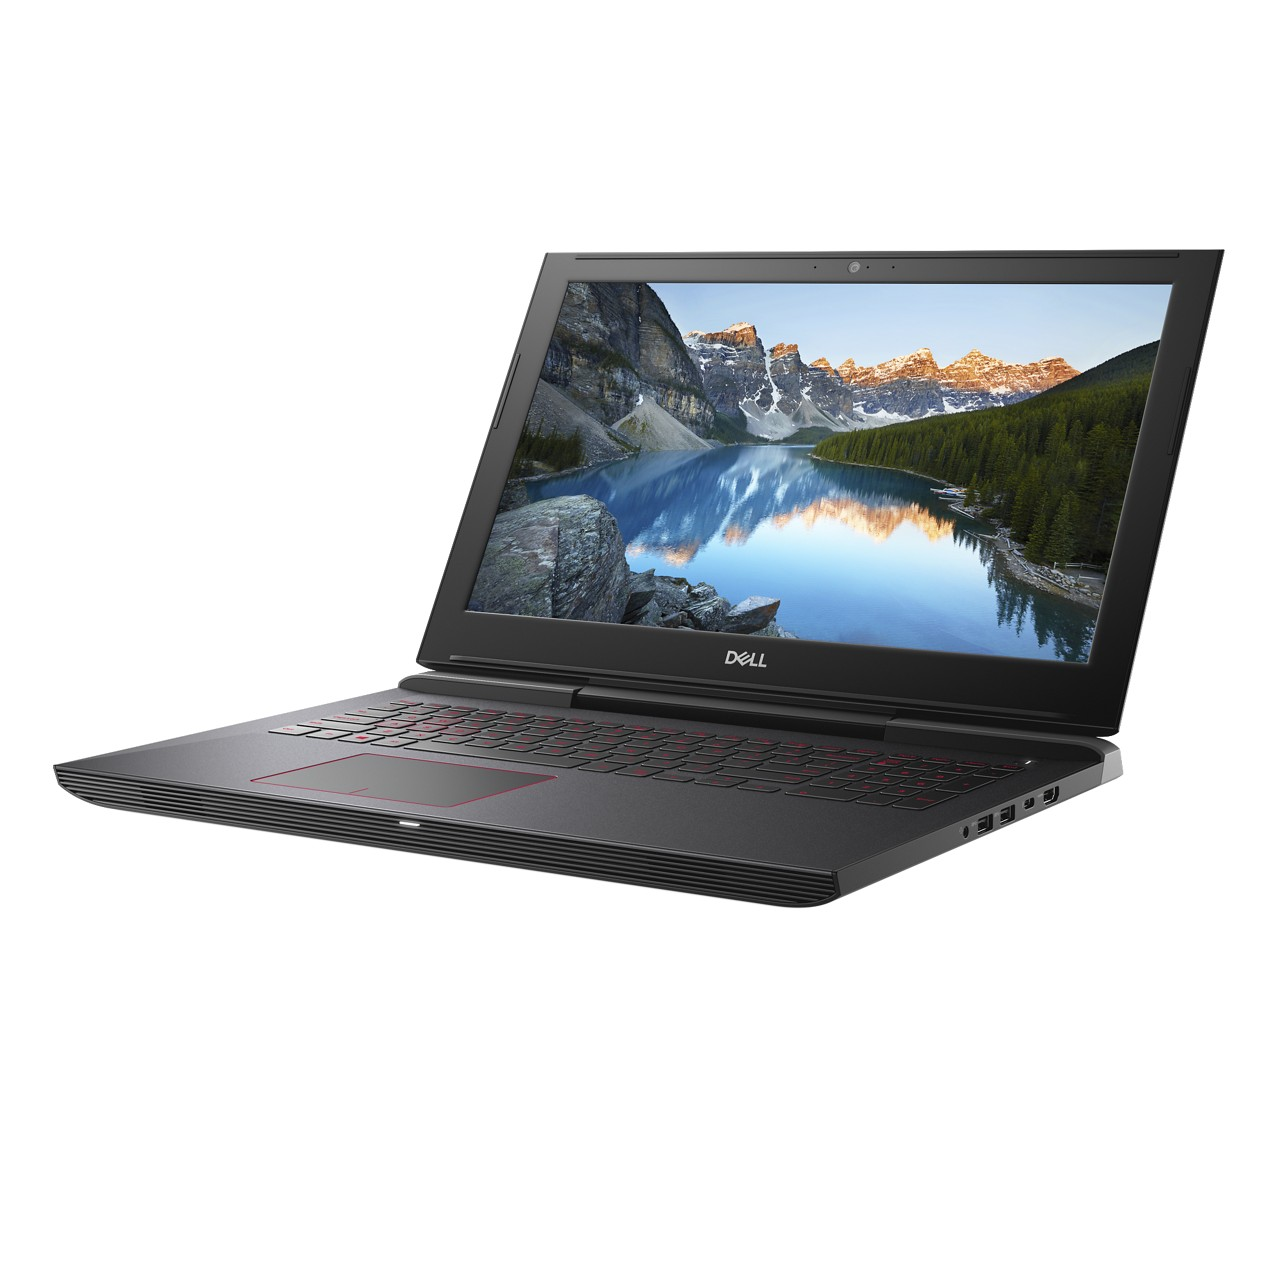 Dell G-Series 15 5587 Laptop 15 6